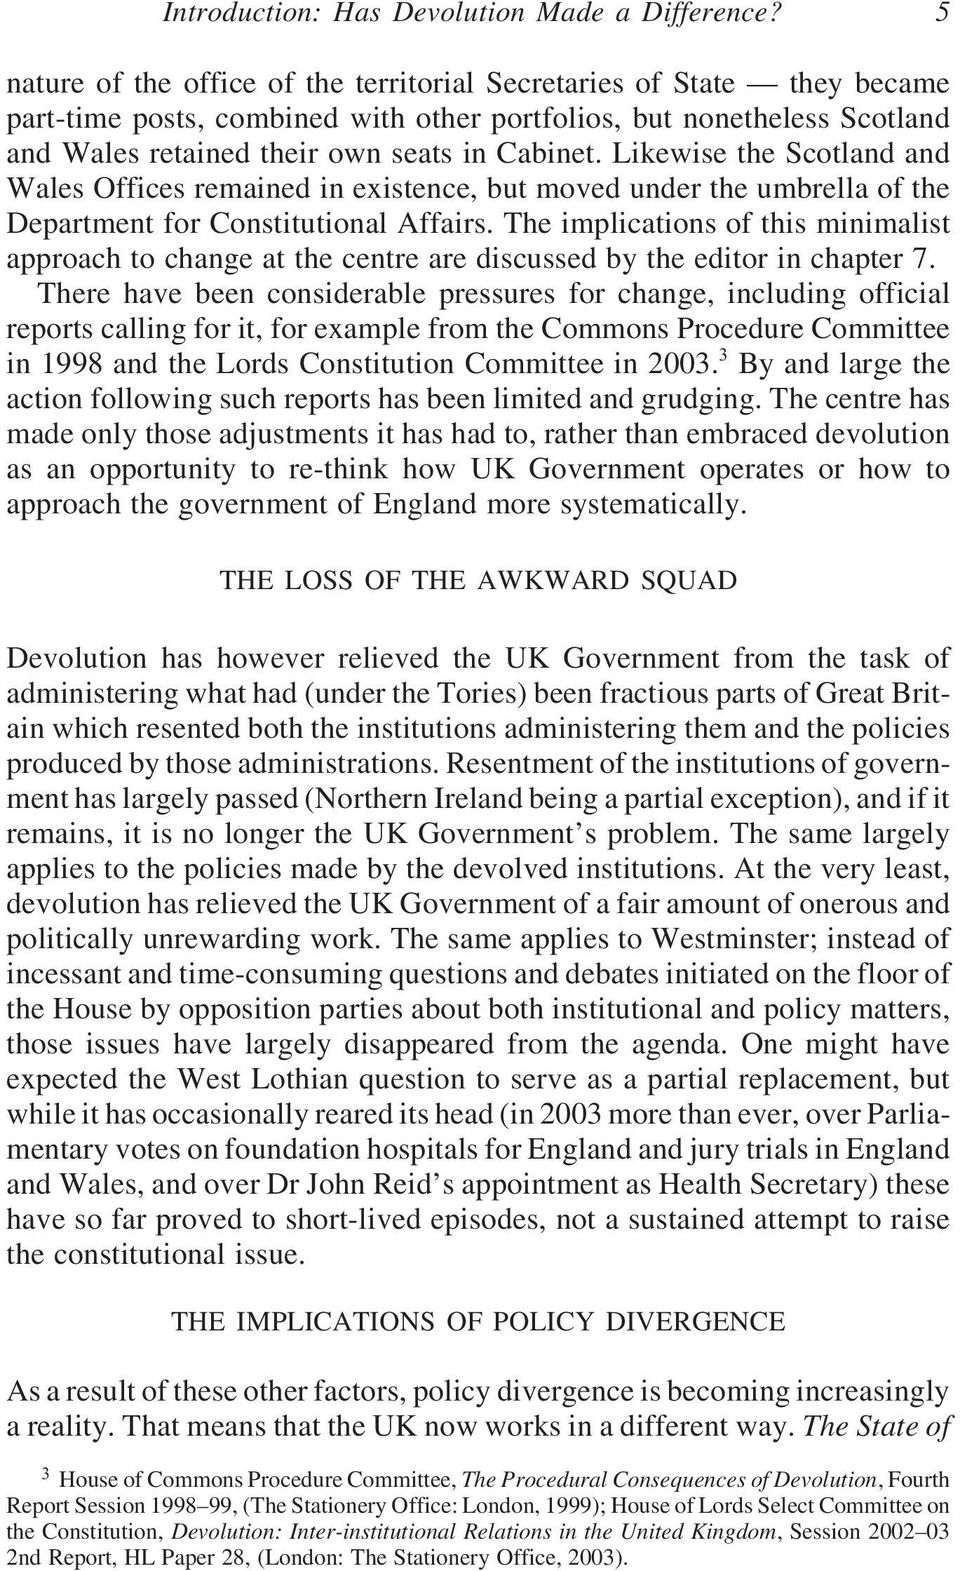 Likewise the Scotland and Wales Offices remained in existence, but moved under the umbrella of the Department for Constitutional Affairs.